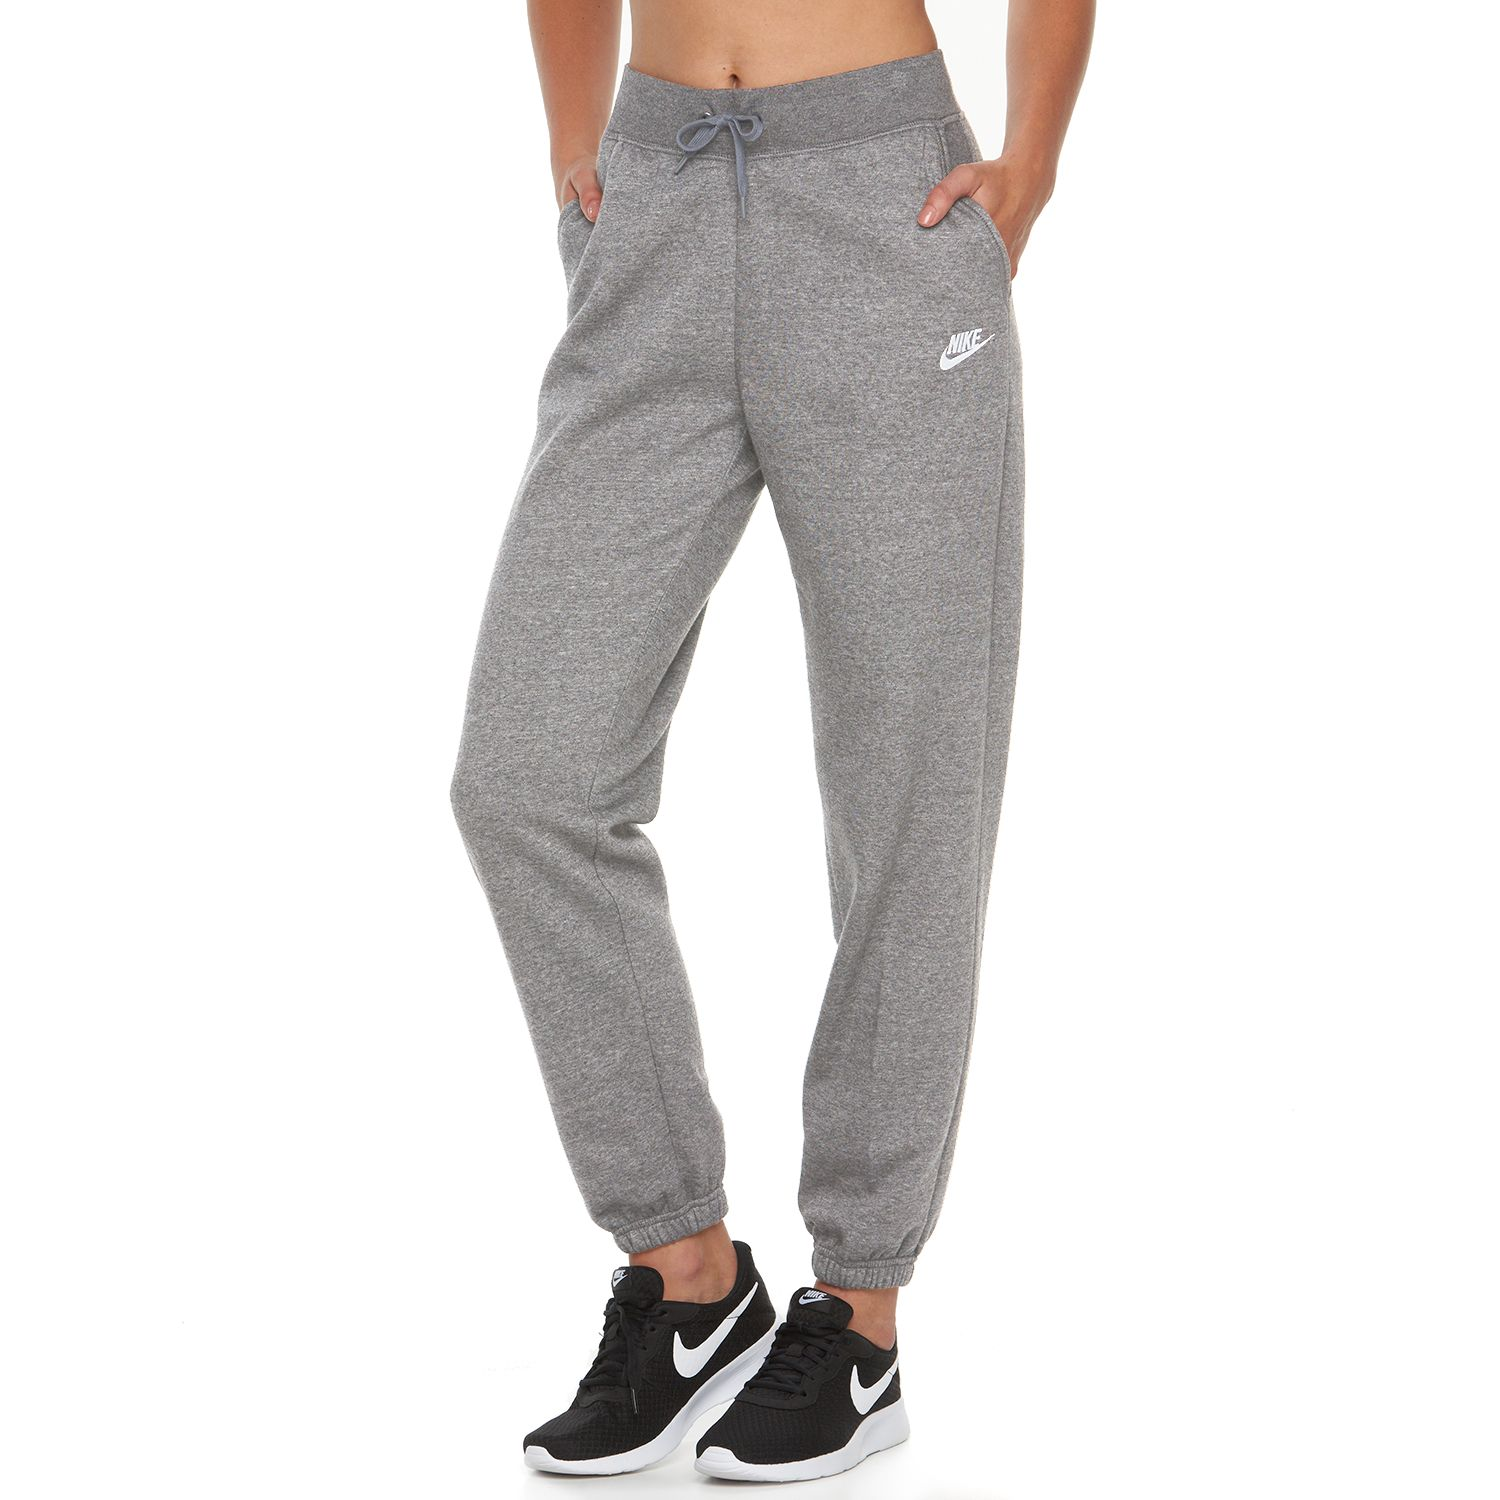 Womens Nike Sportswear Sweatpants